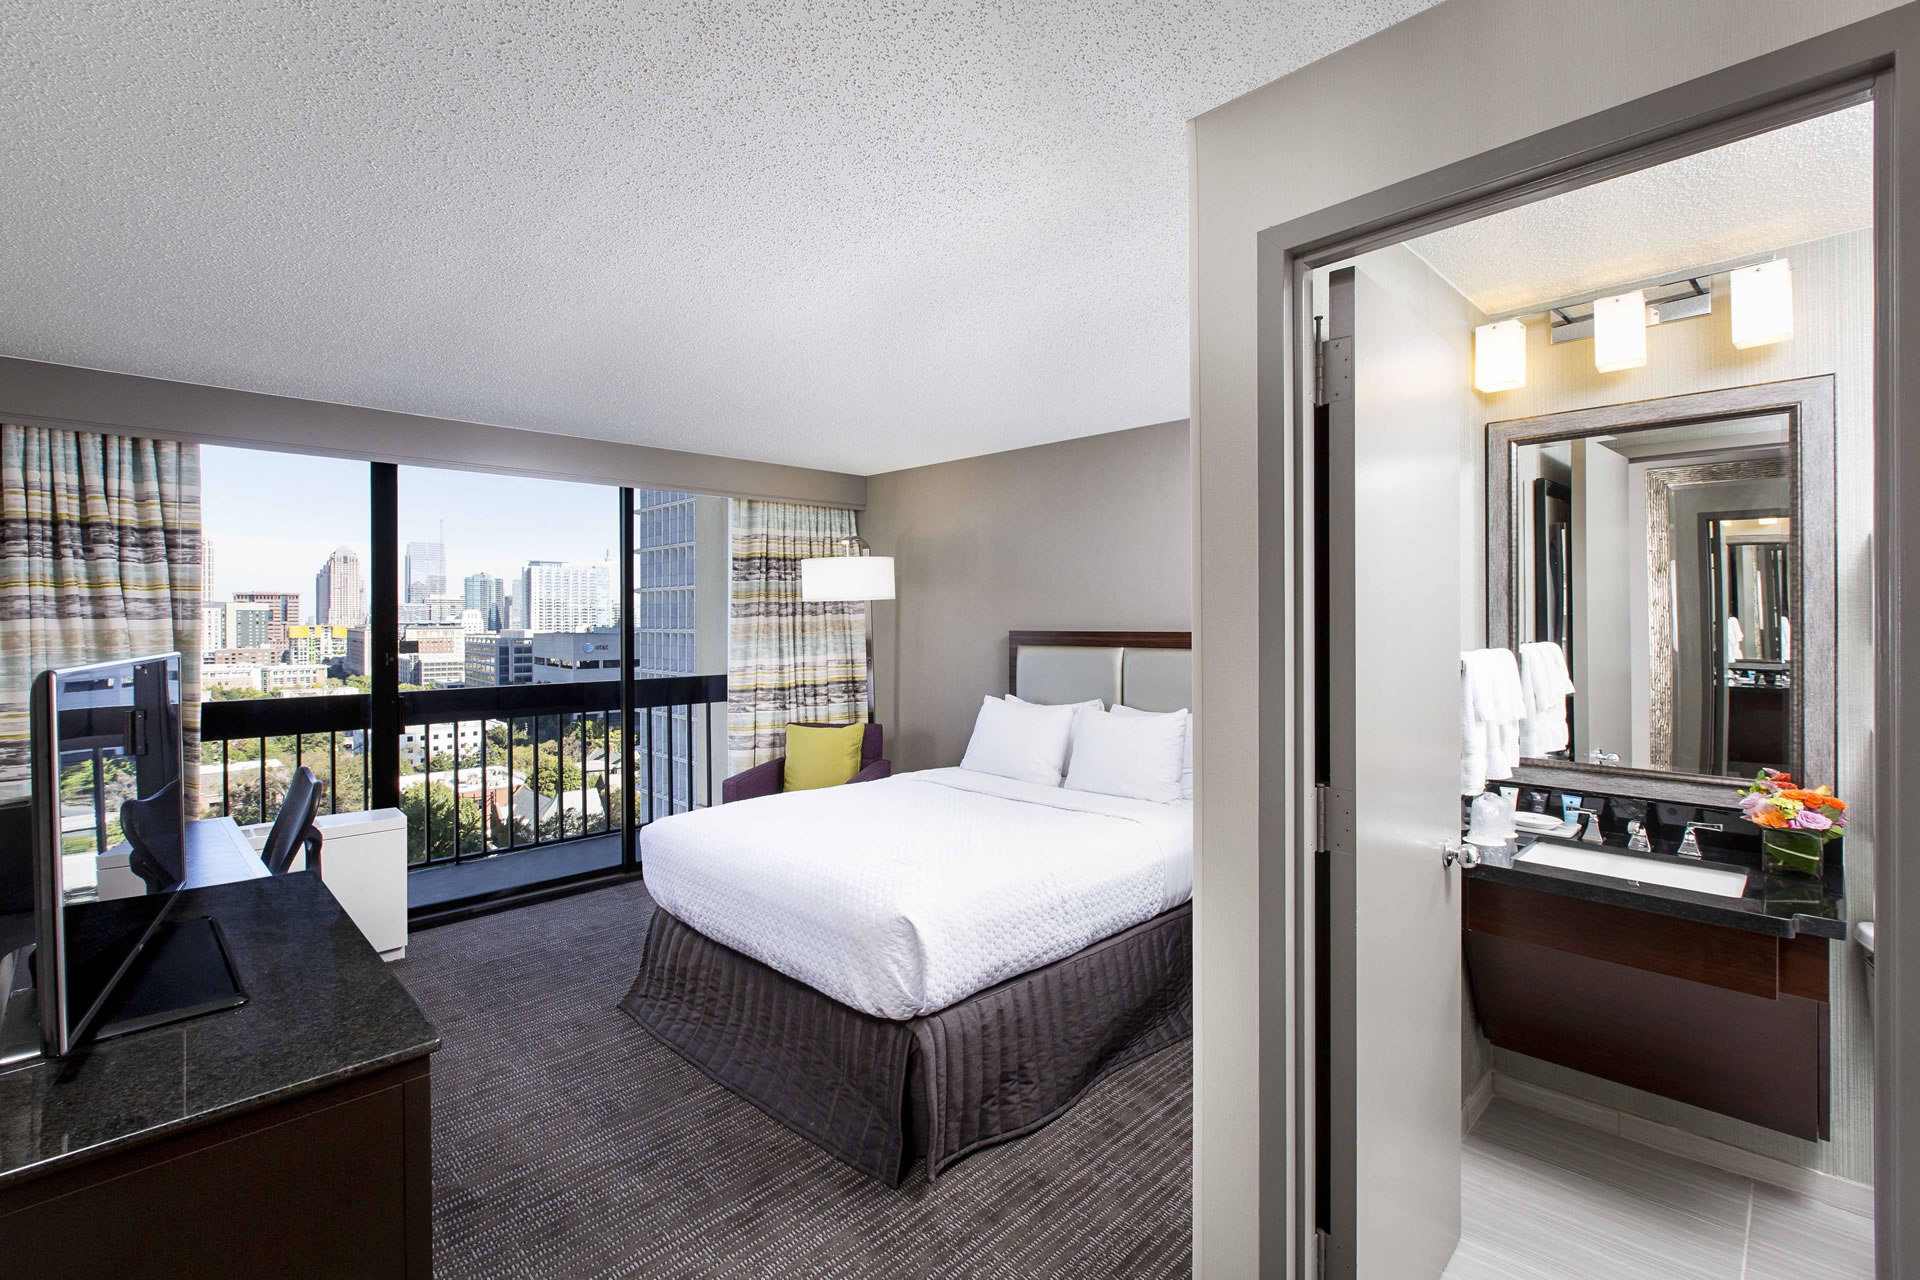 Guest room with one queen bed and a view of the Atlanta skyline at Crowne Plaza Atlanta Midtown.